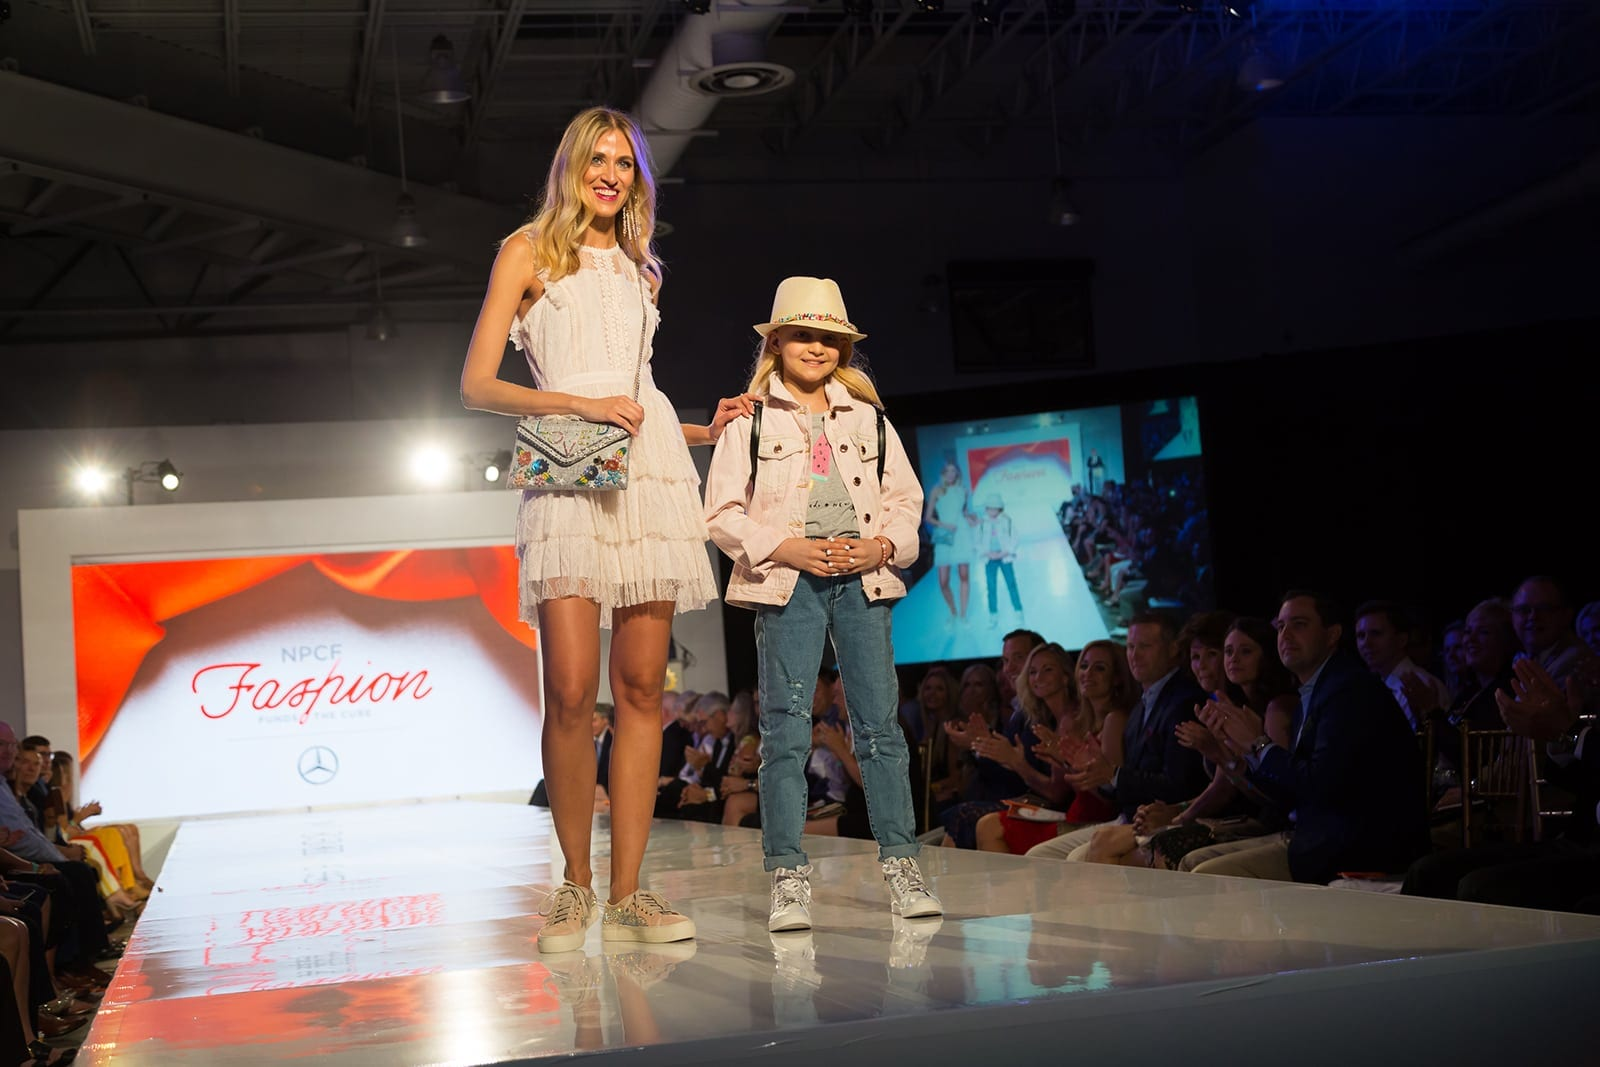 Tampa Fashion model with Pediatric Cancer Patient walking down runway